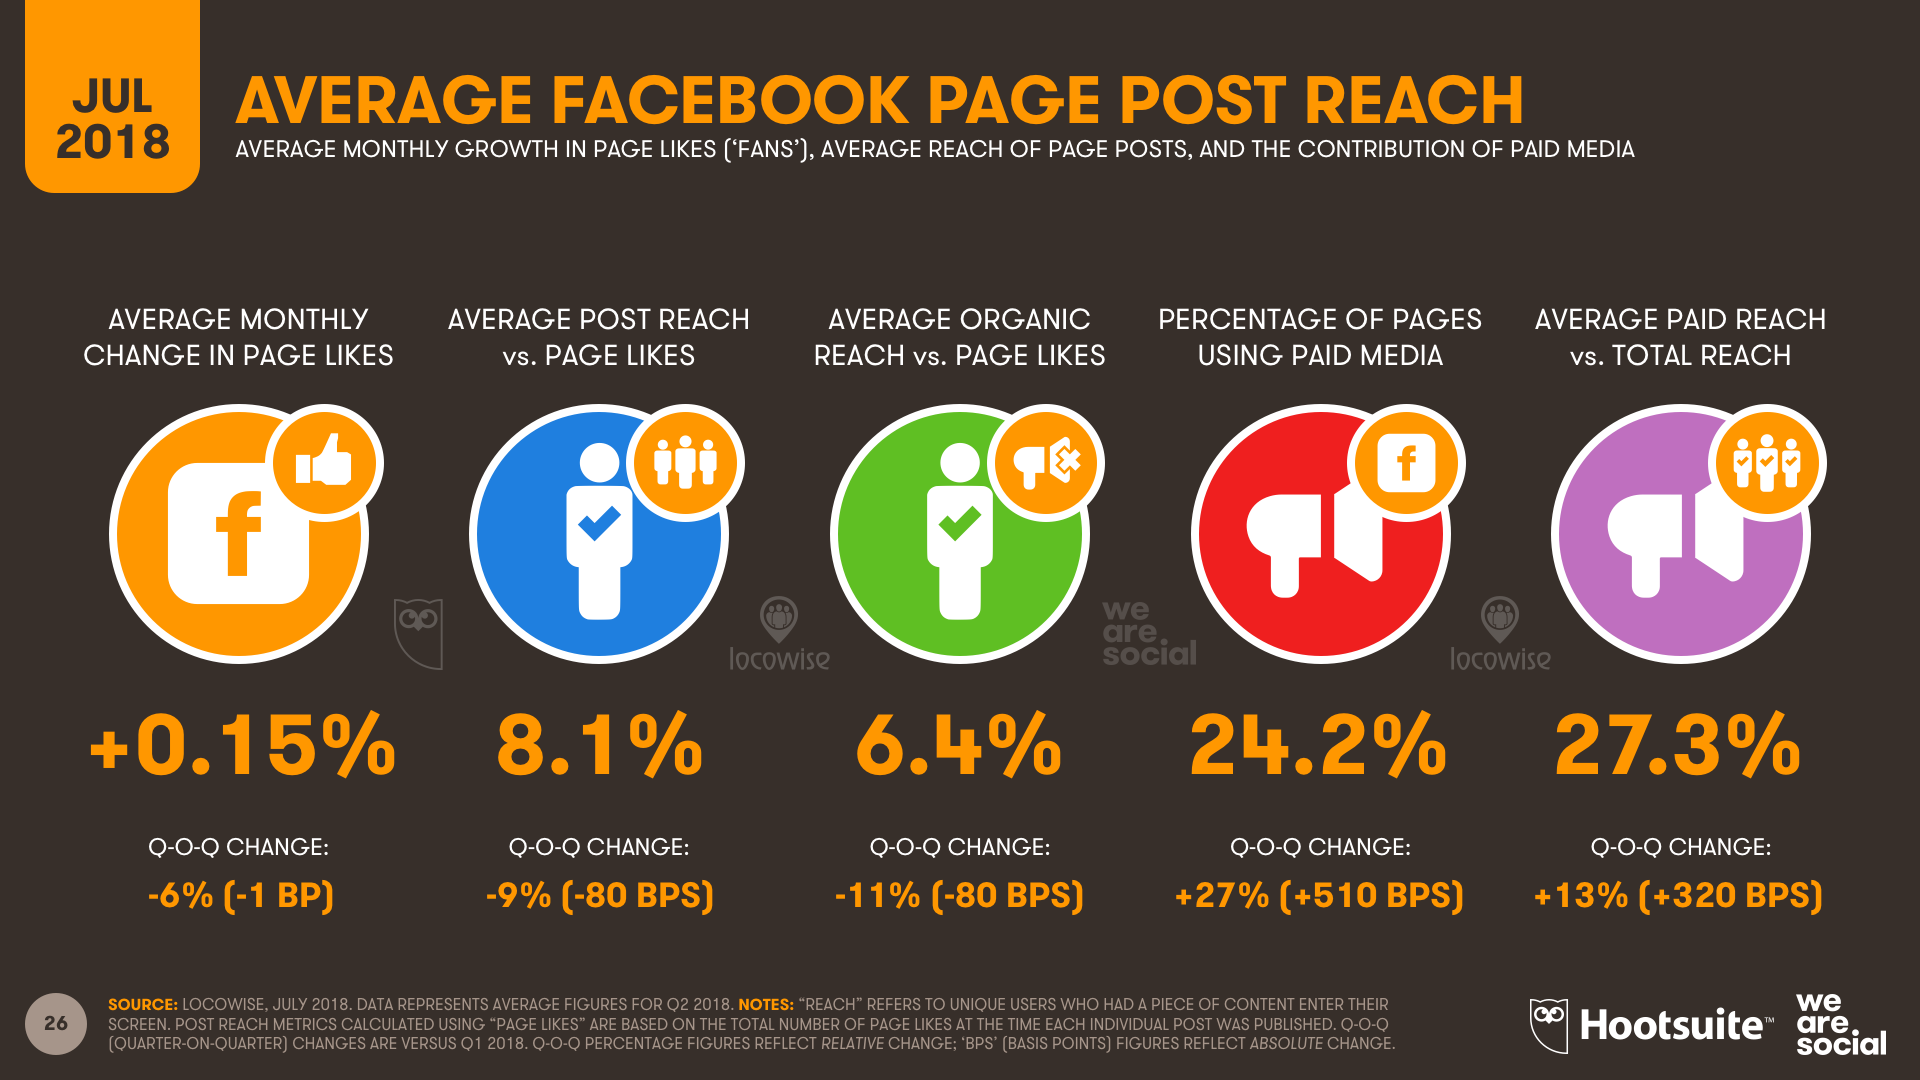 Q3 2018 - Locowise Facebook Reach